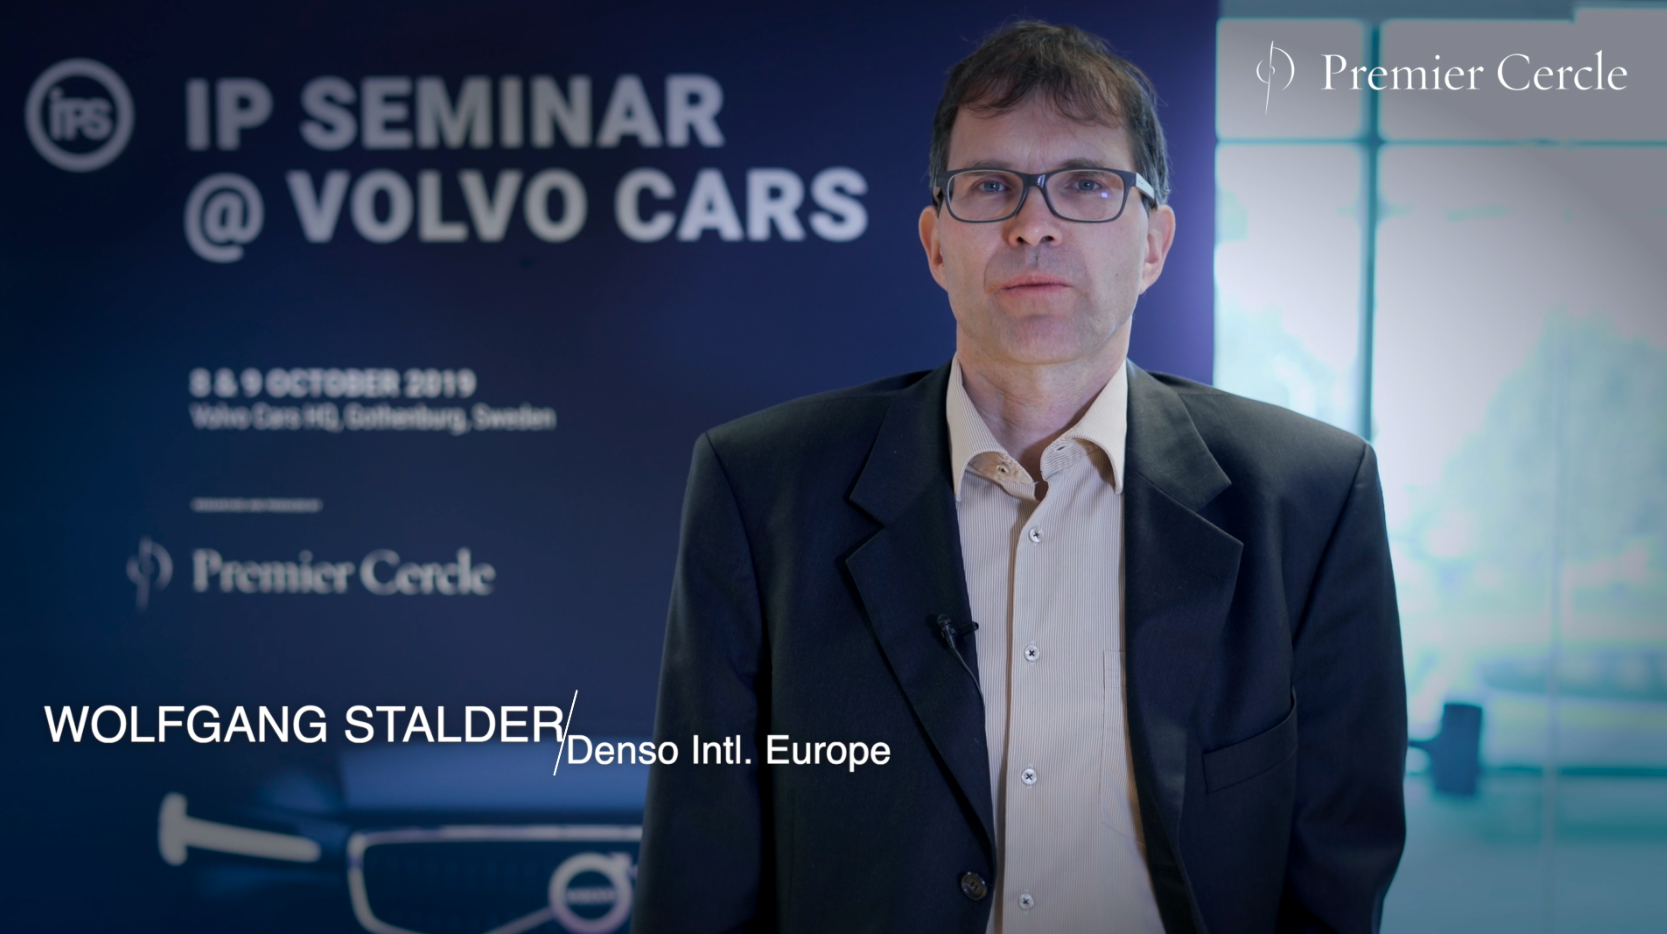 Wolfgang Stalder from DENSO International Europe interviewed by Premier Cercle